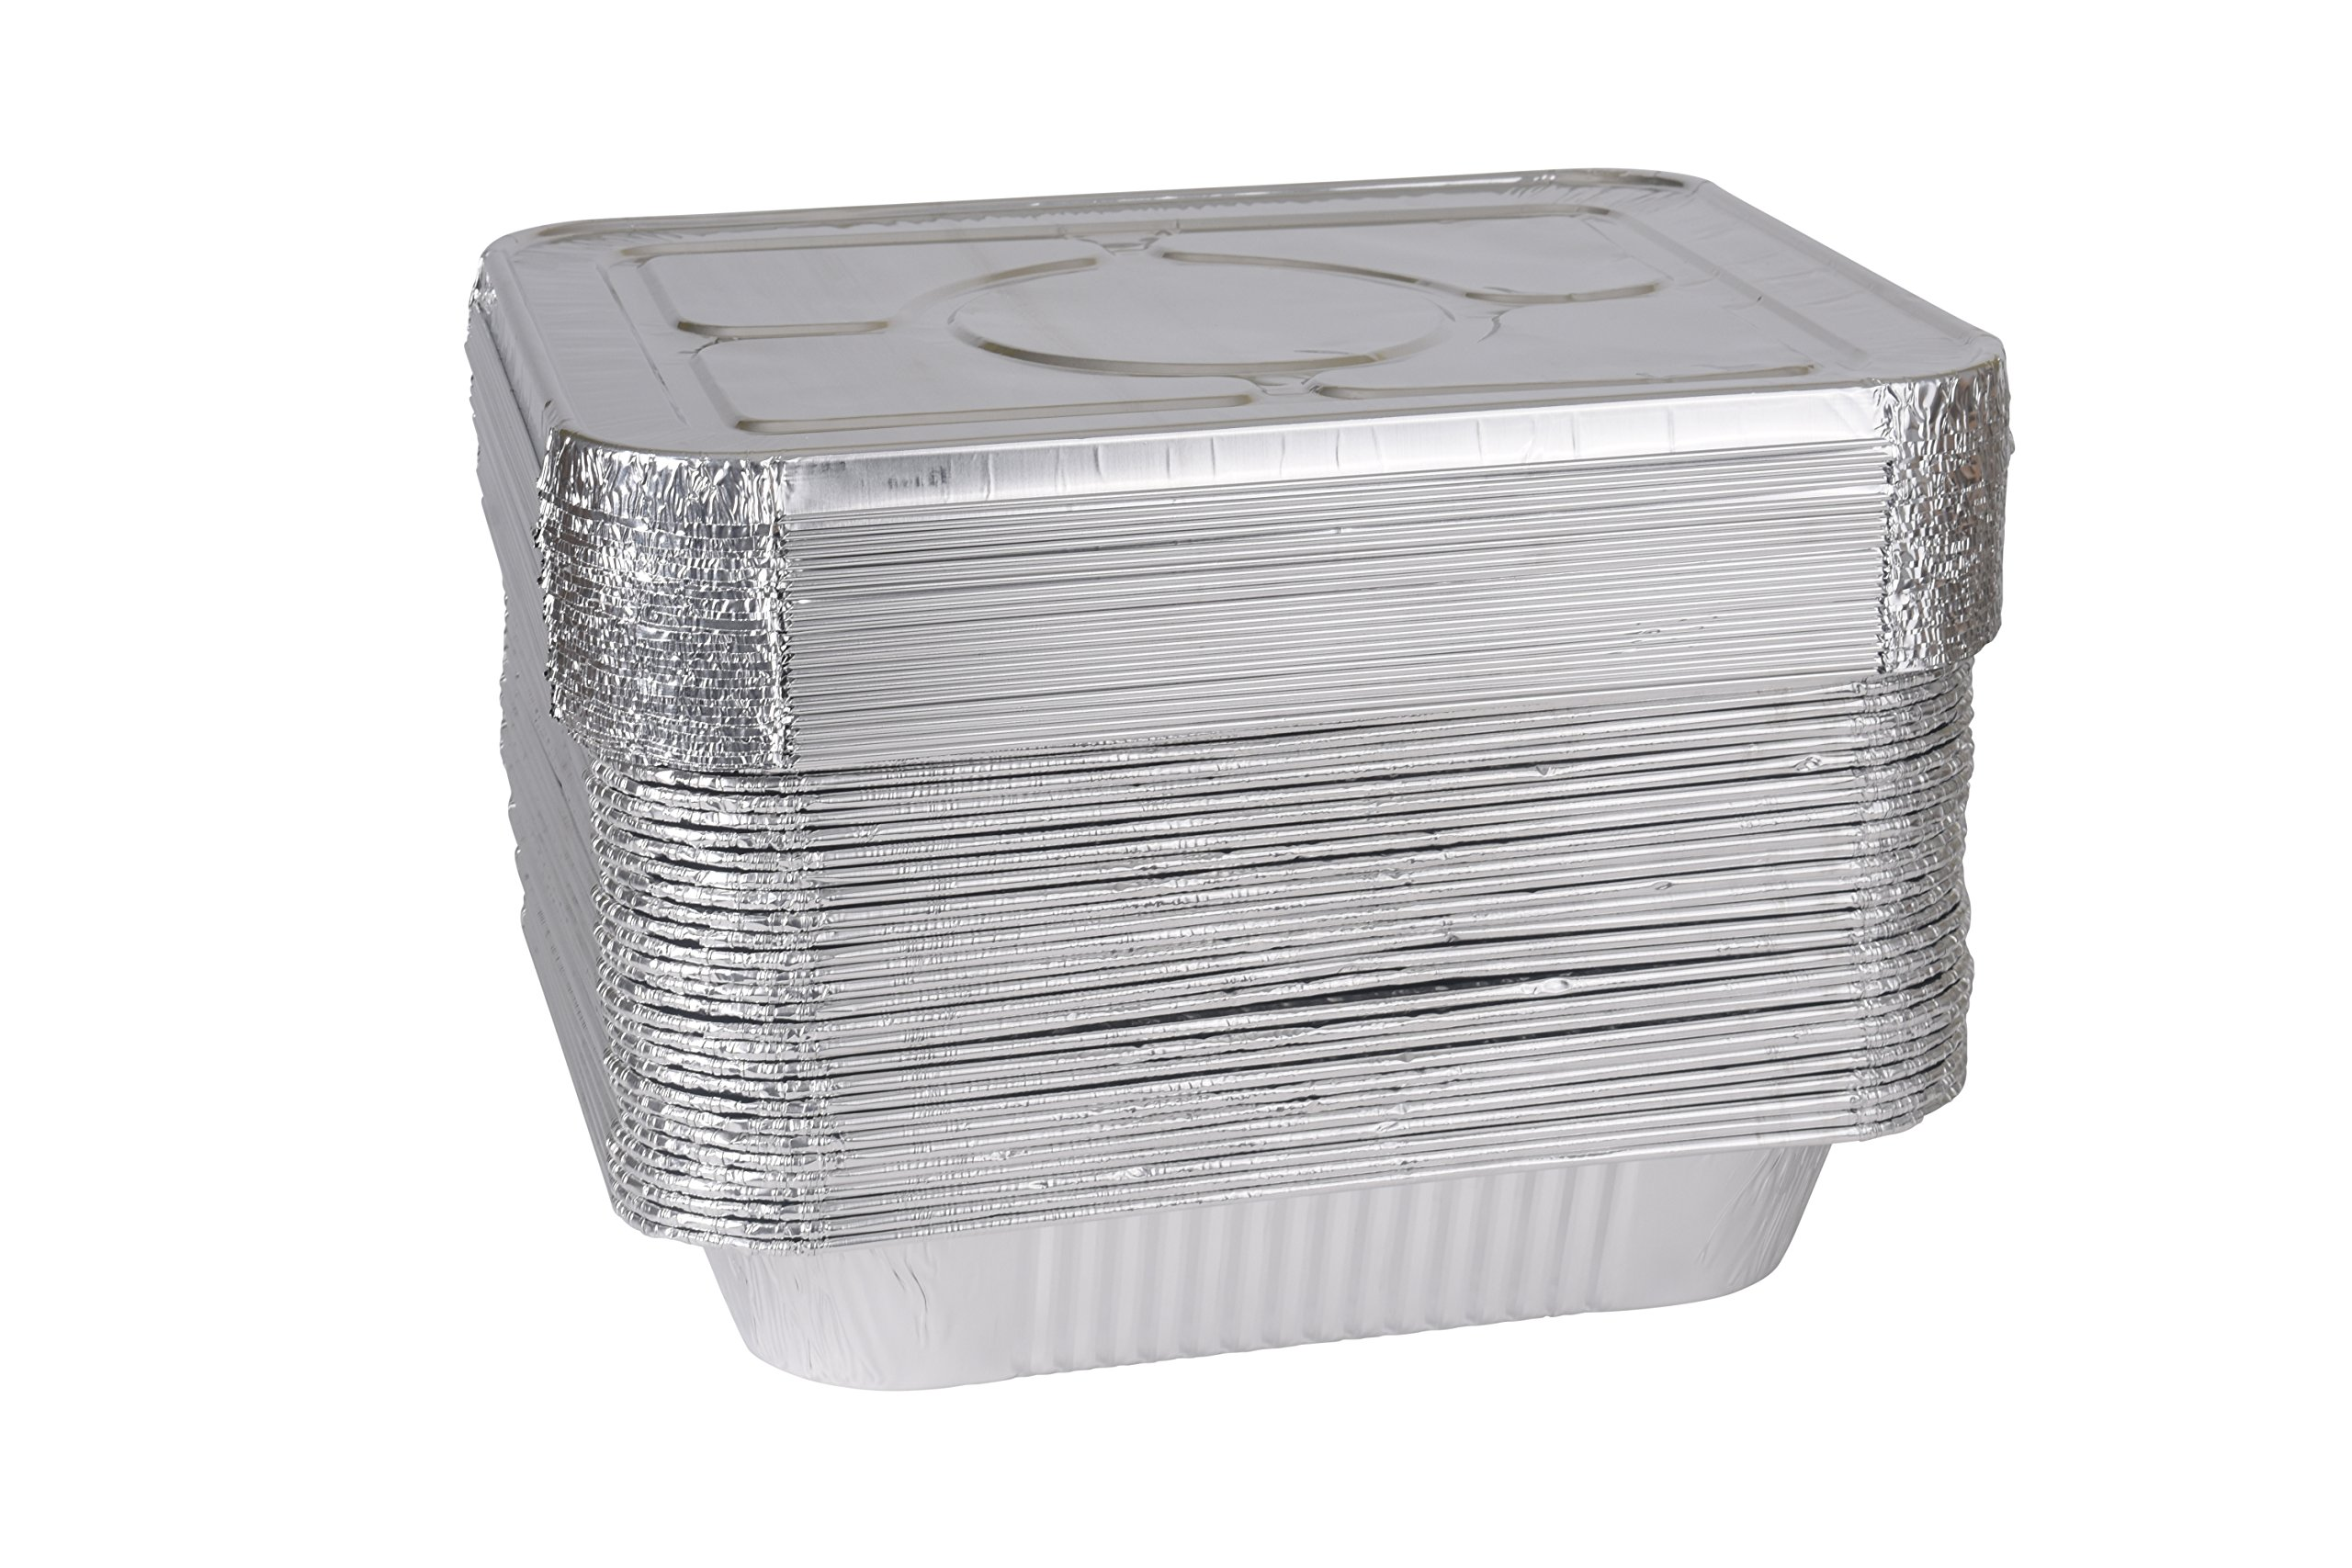 A World of Deals 9 X 13 Half Size Deep Foil Steam Pans with Lids, 30 Pack by A World Of Deals (Image #6)